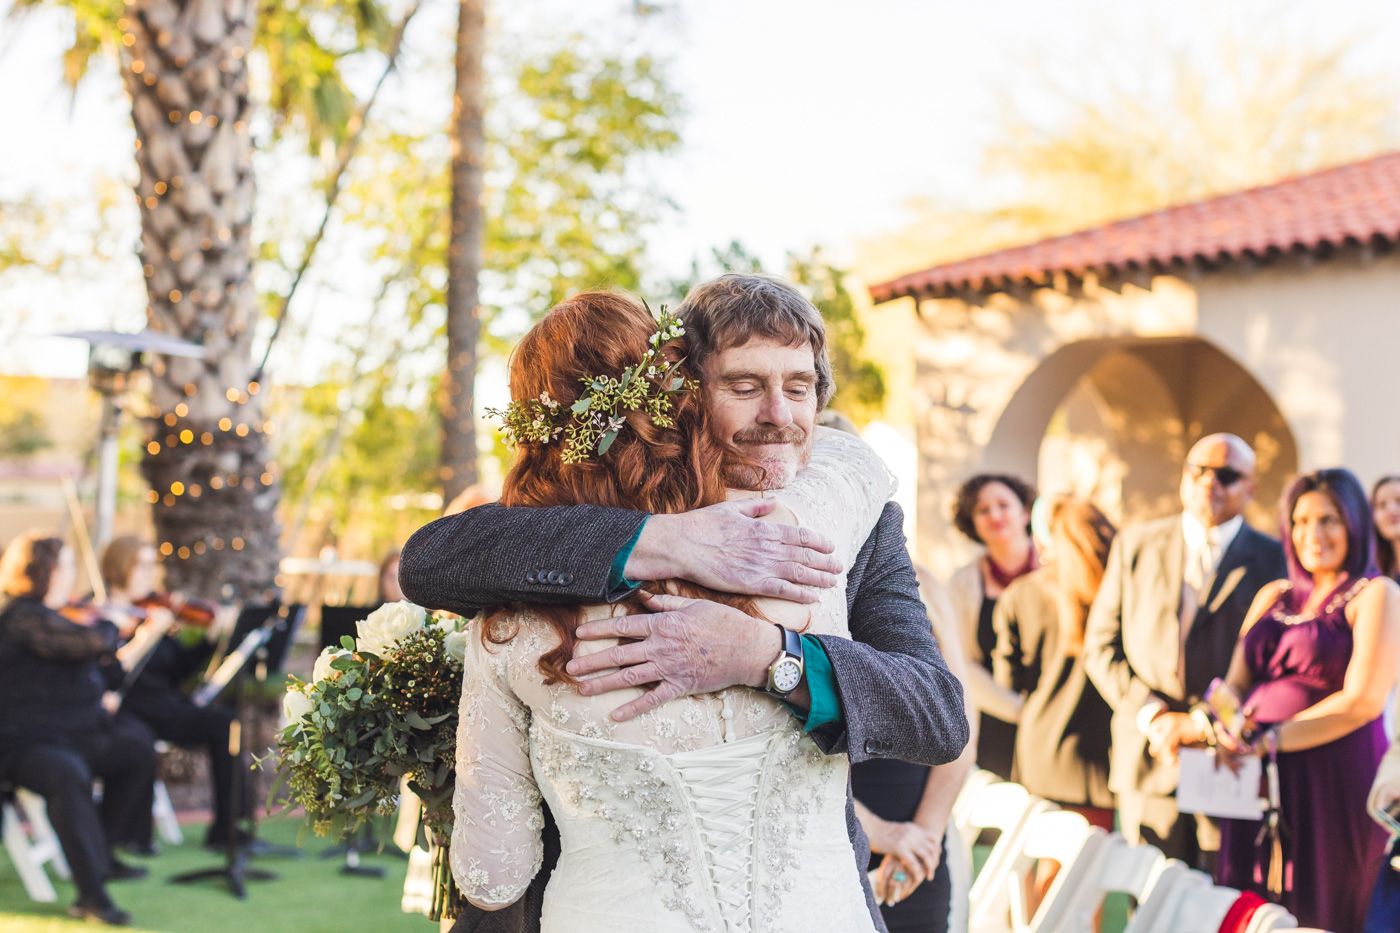 father-of-bride-hugging-daughter-wedding-ceremony